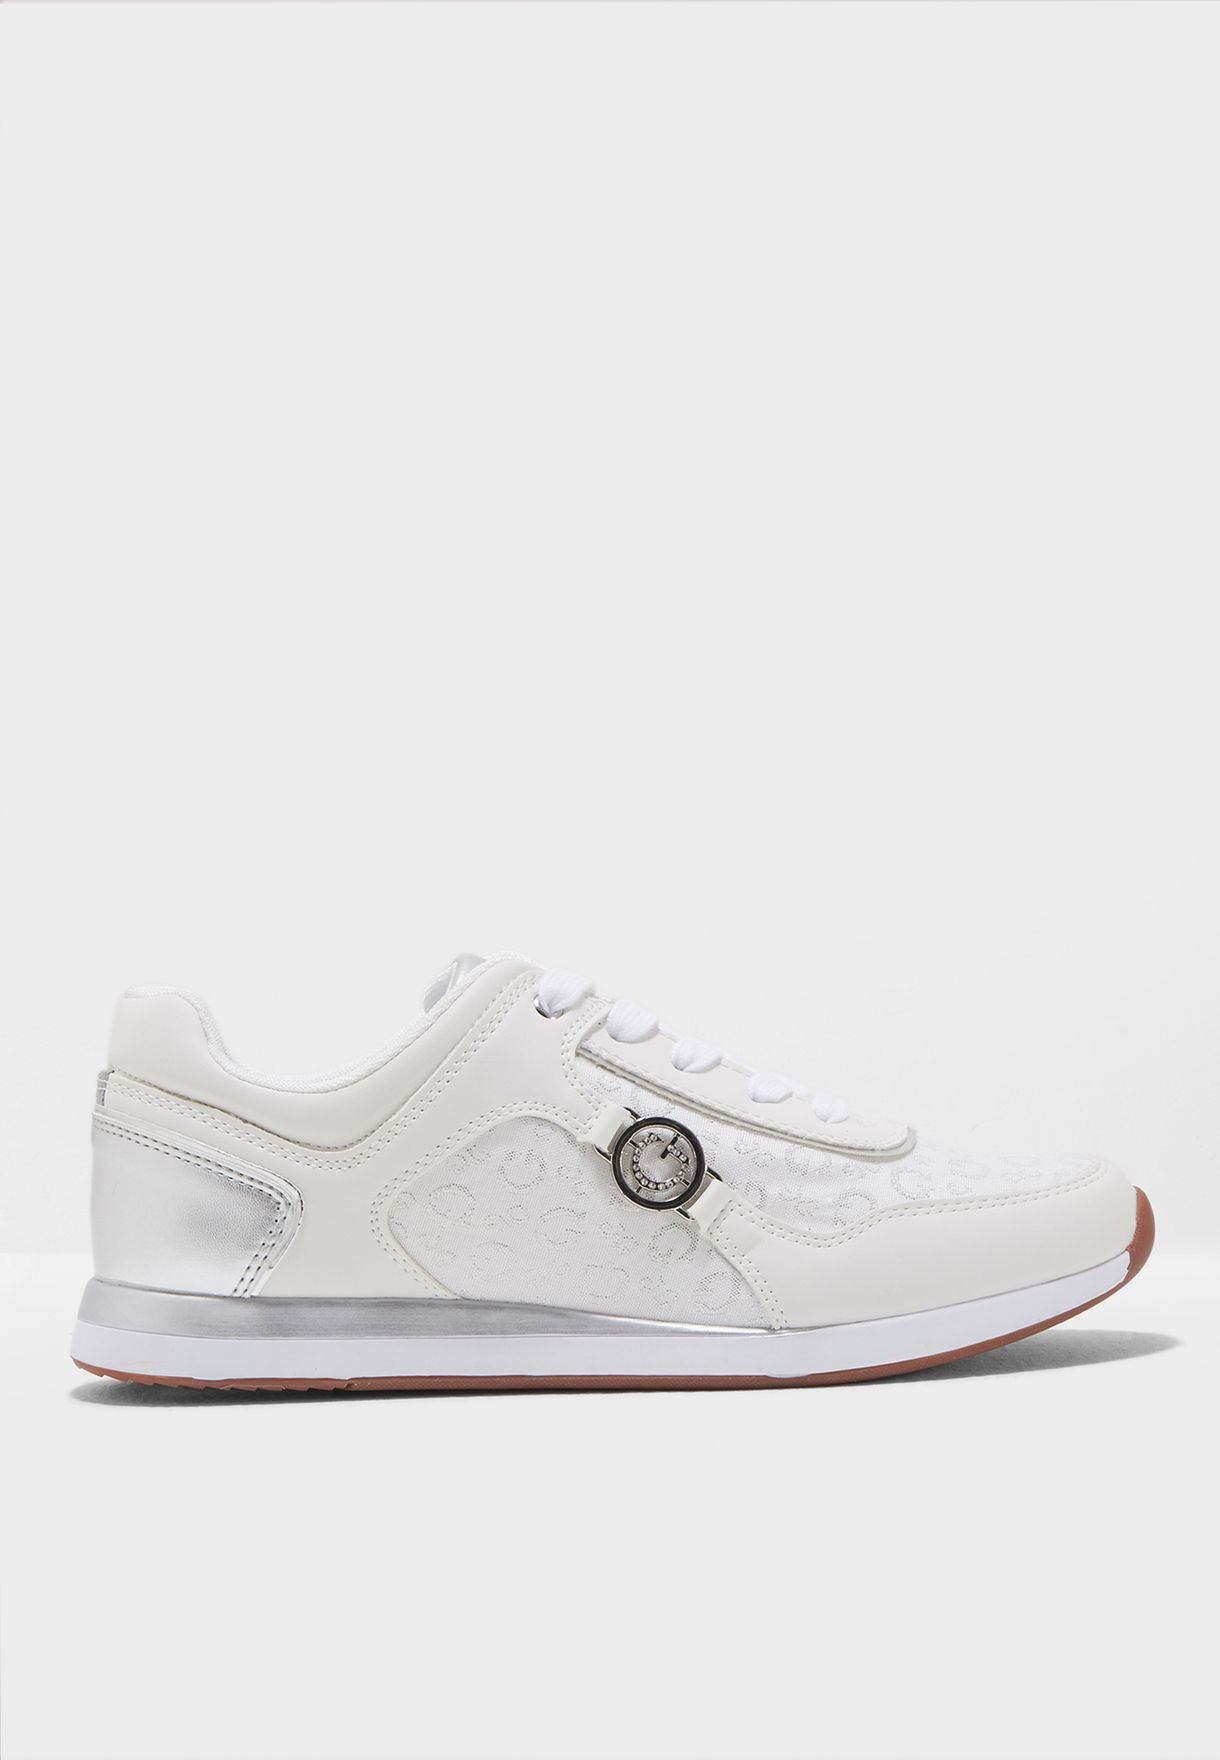 8c51655db5e Shop Guess white Cleo Lace Up Sneaker WGCLEO‐B for Women in UAE ...